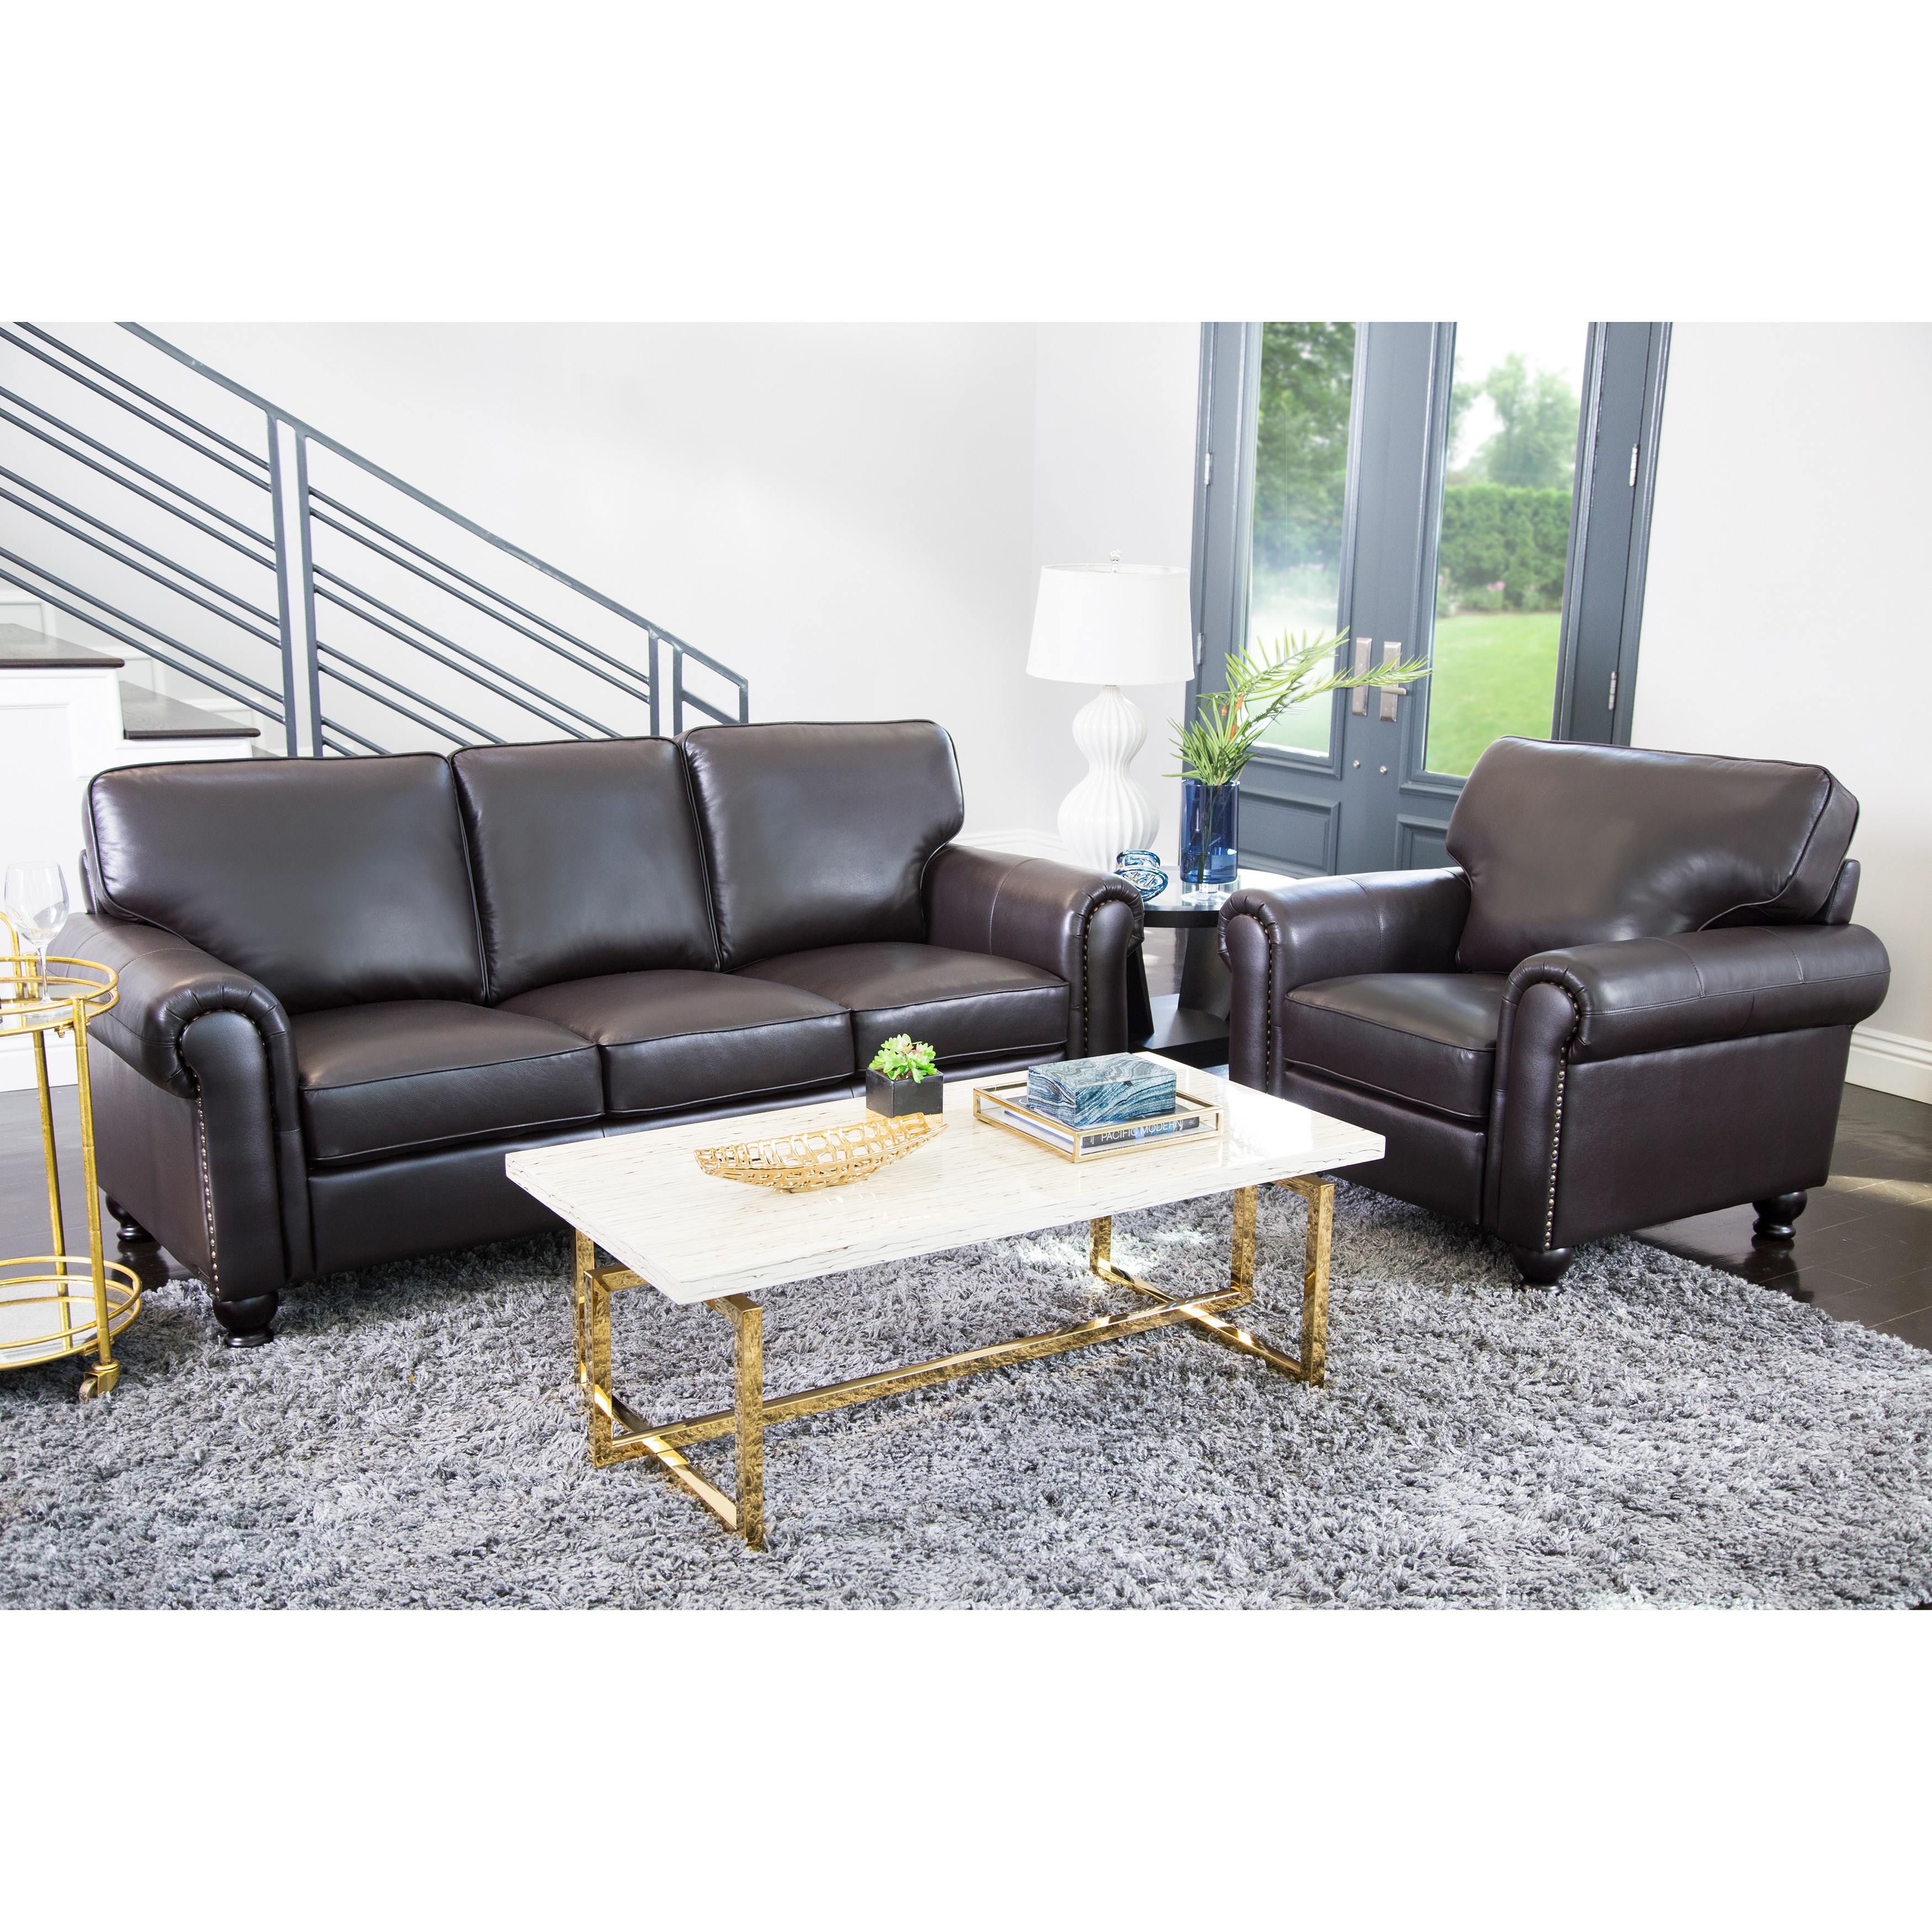 Superieur Abbyson London Top Grain Leather 2 Piece Living Room Set   Free Shipping  Today   Overstock.com   13118846